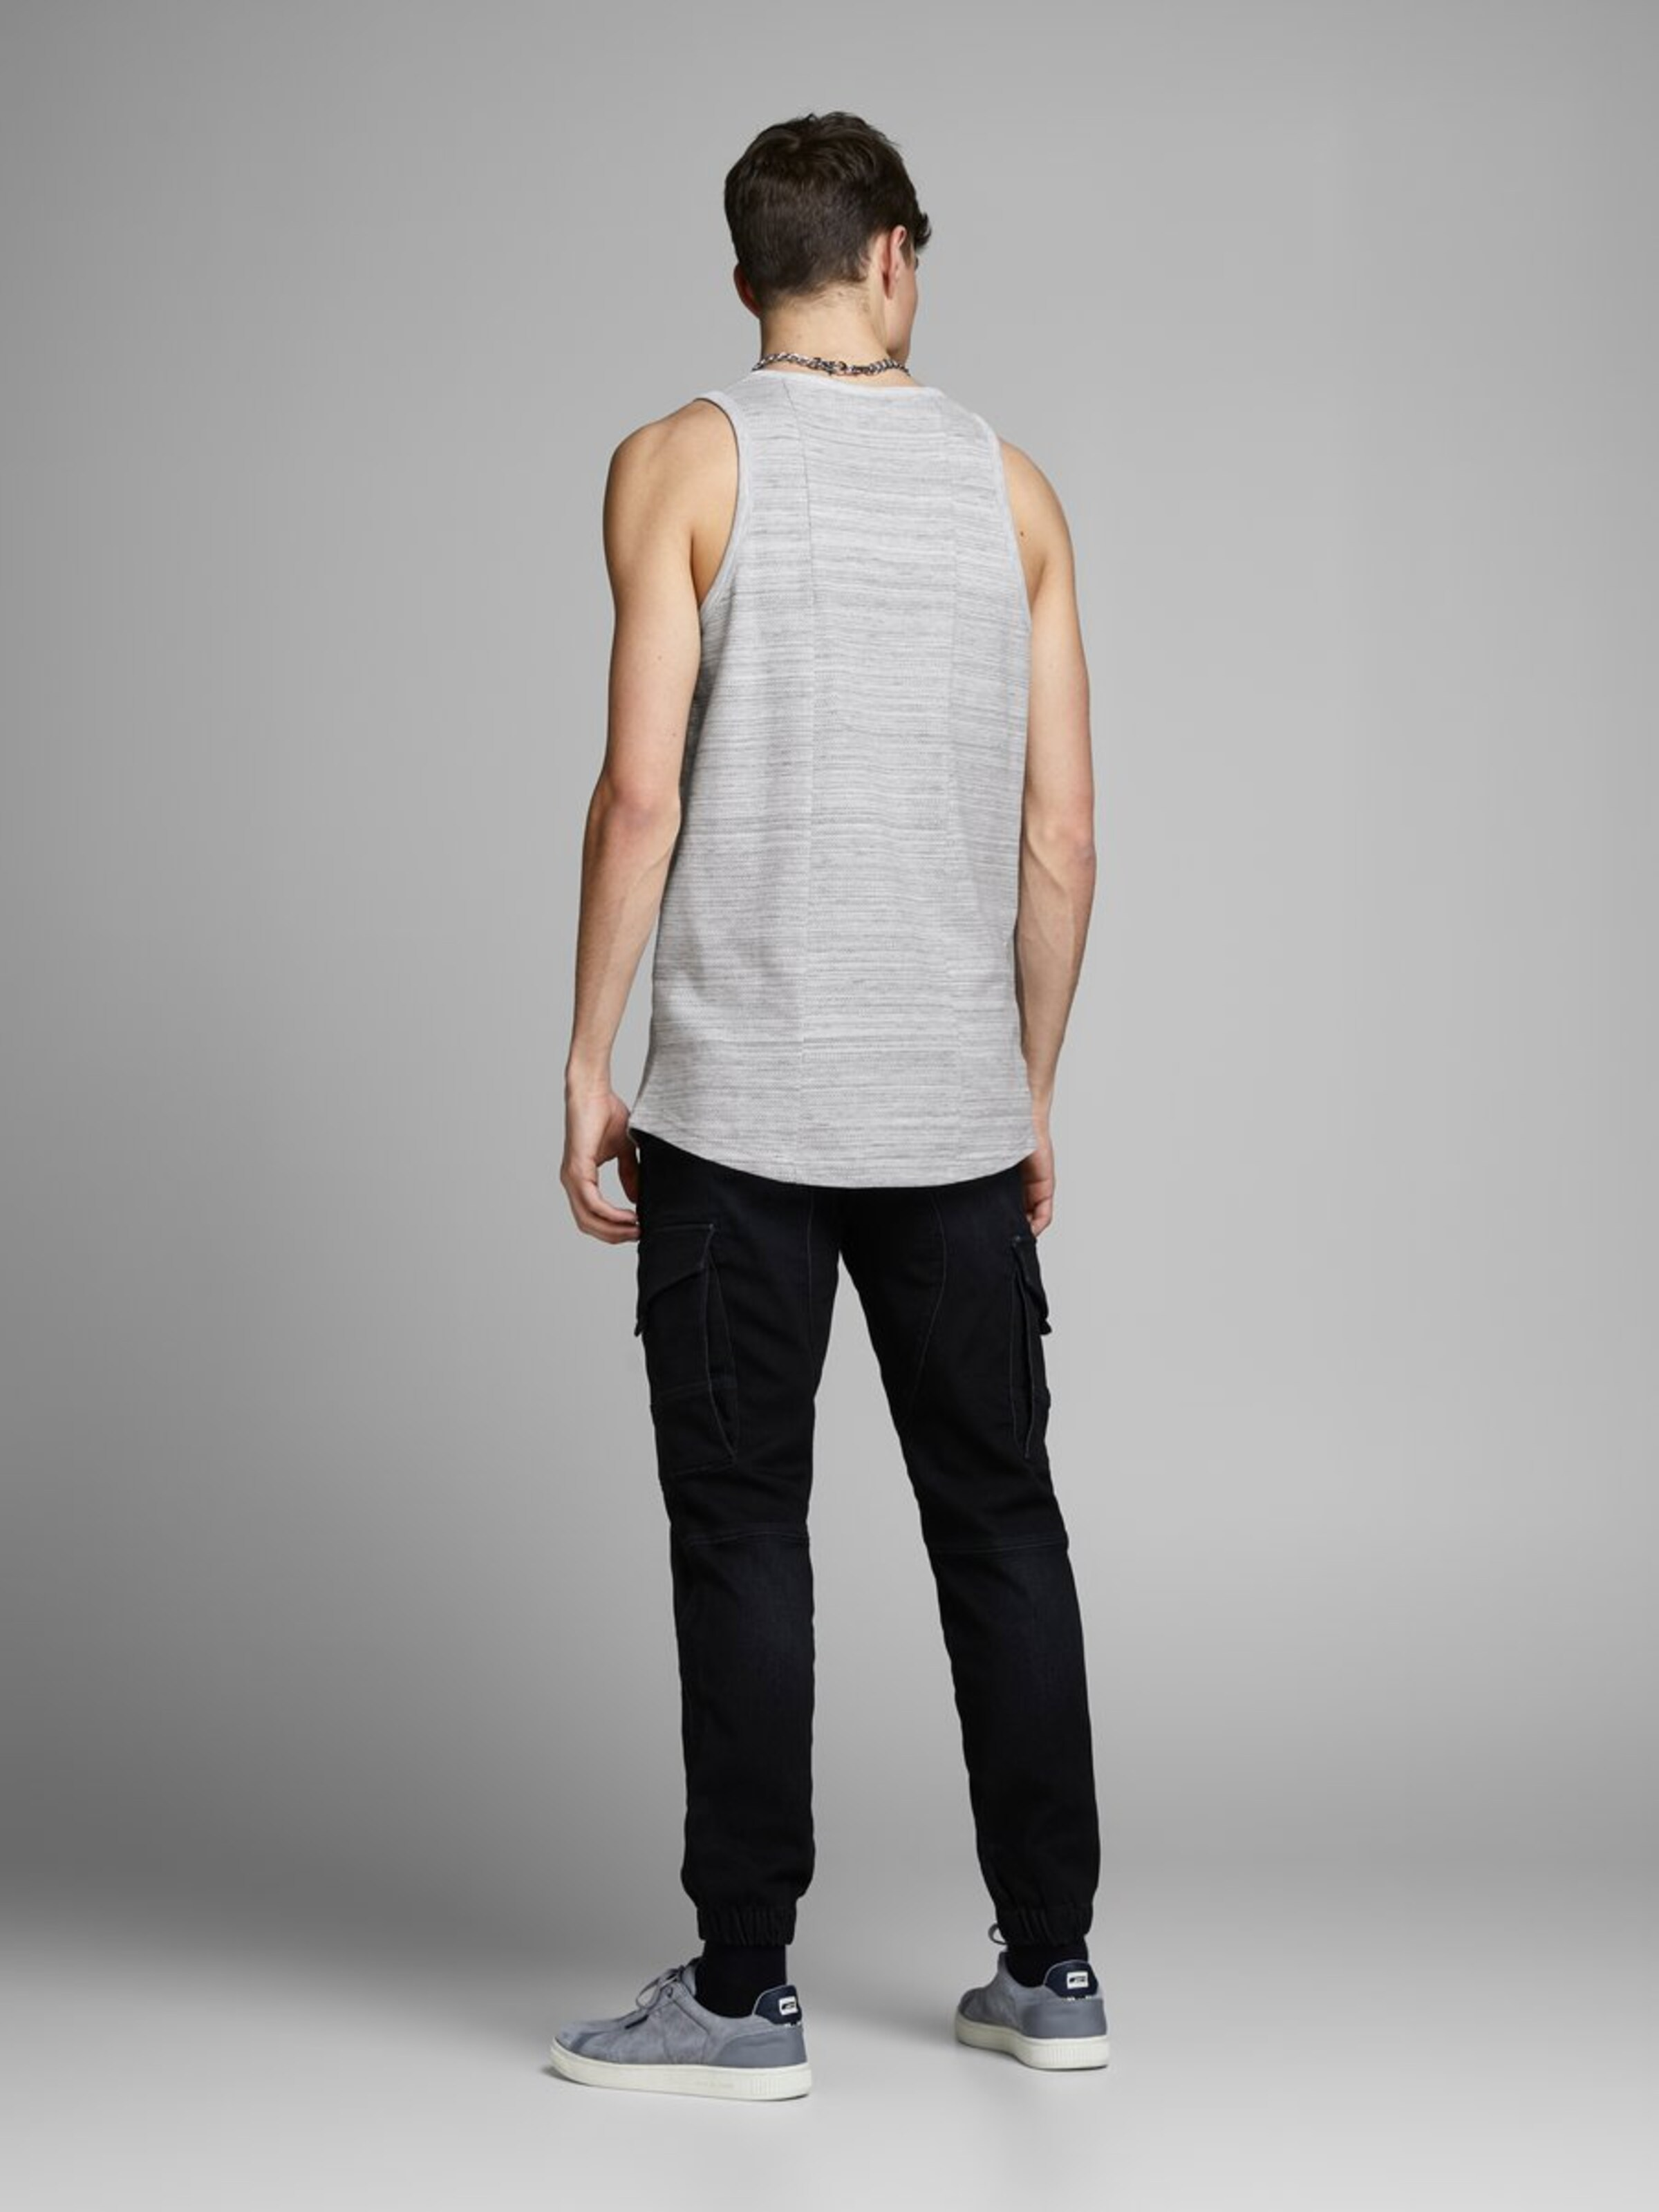 Jones Jackamp; Tanktop Jones In Jackamp; Hellgrau Tanktop eBQrCxdoWE